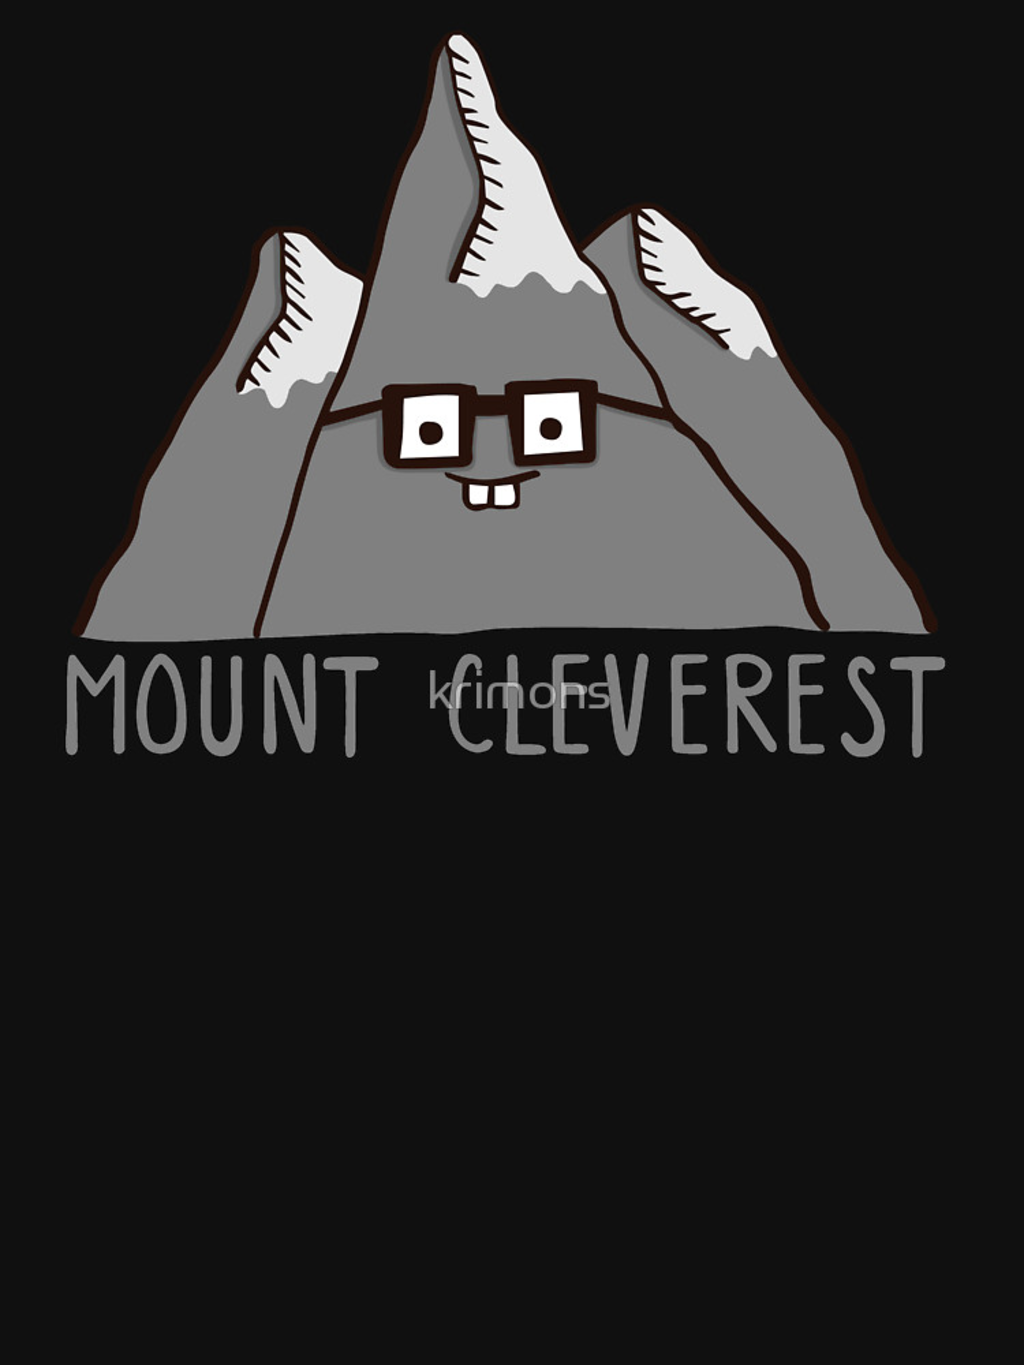 RedBubble: Nerd Mount Cleverest